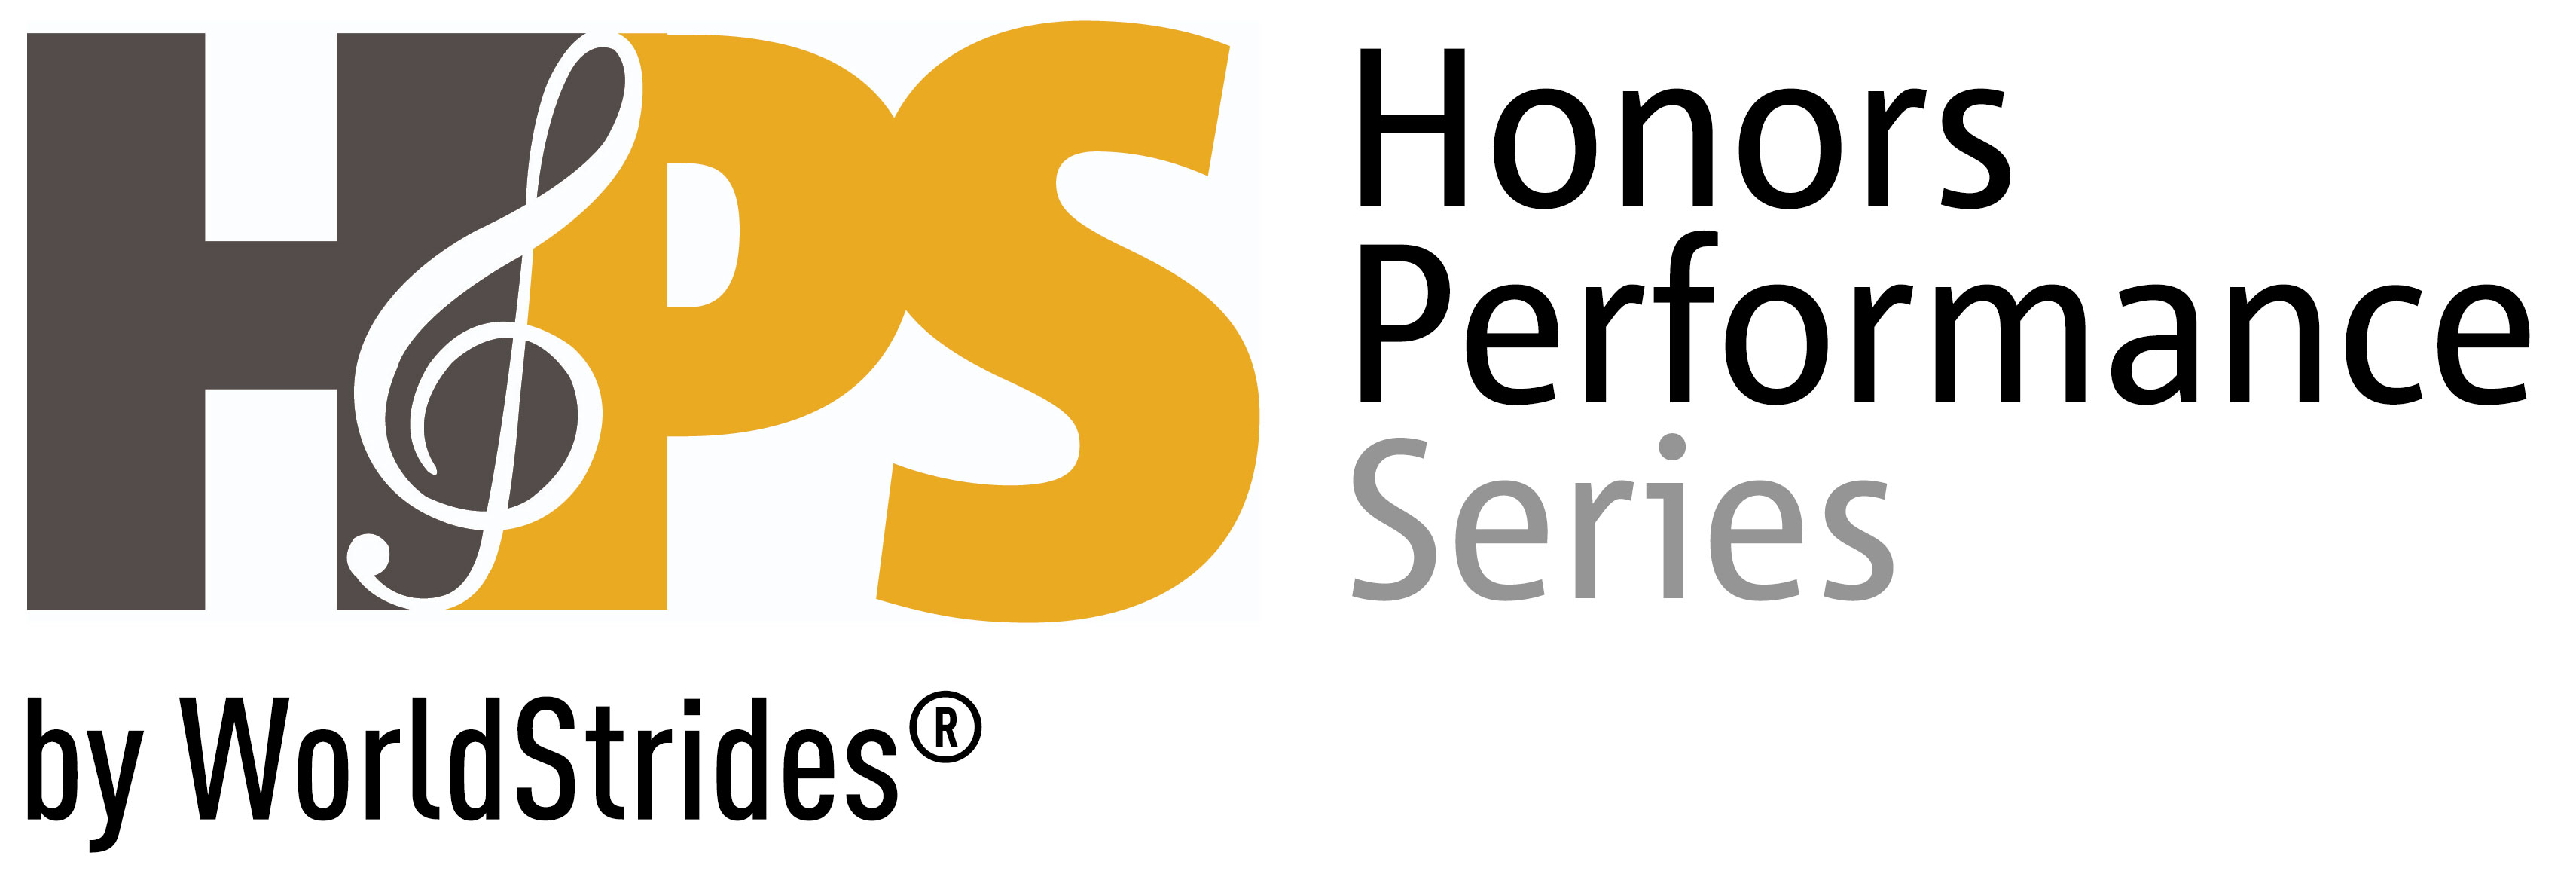 Honors Performance Series